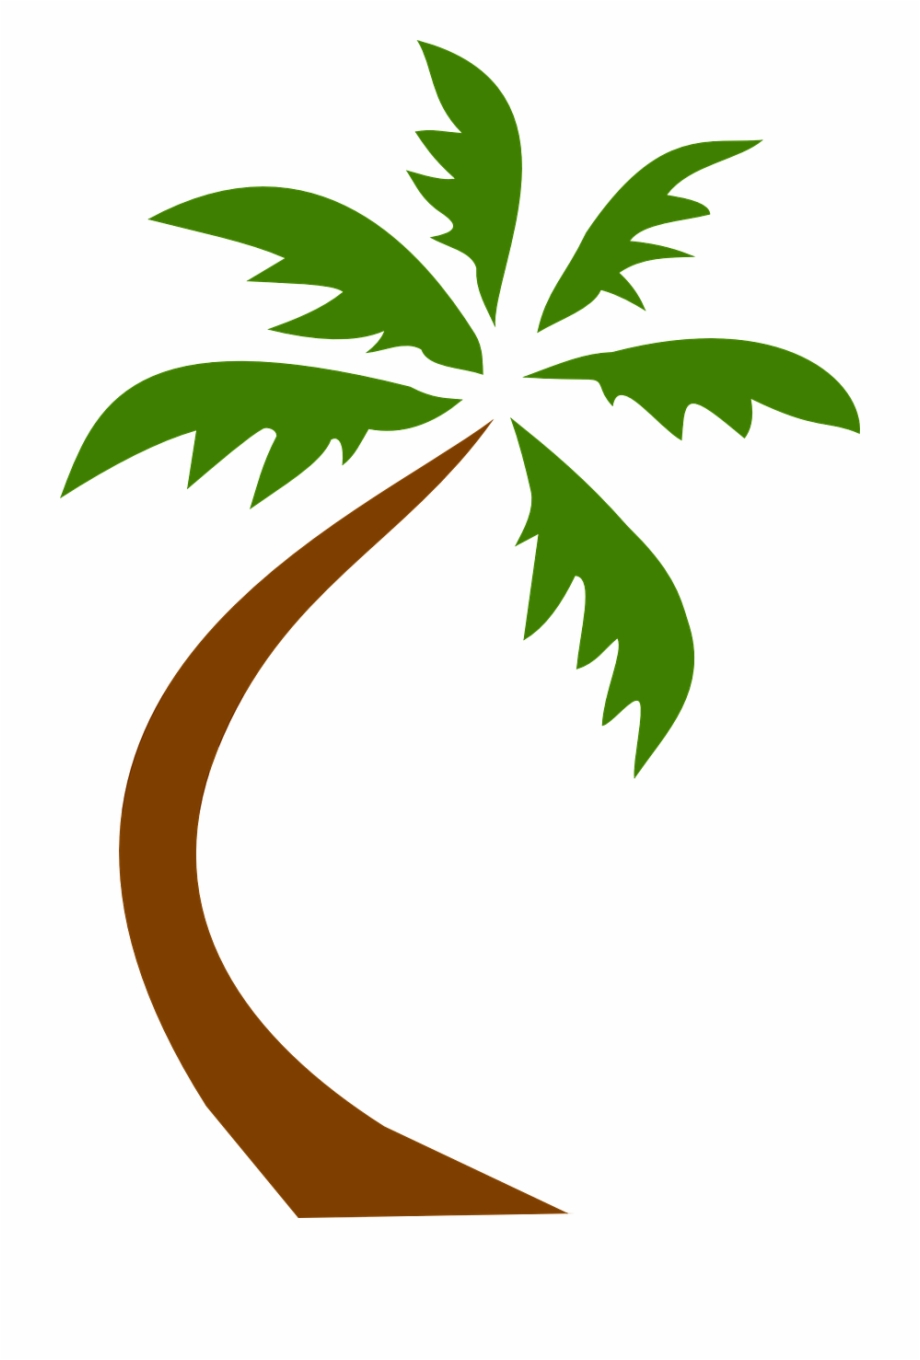 Coconut Tree Tropical Palms Png Image - Palm Trees Clip ... (920 x 1360 Pixel)